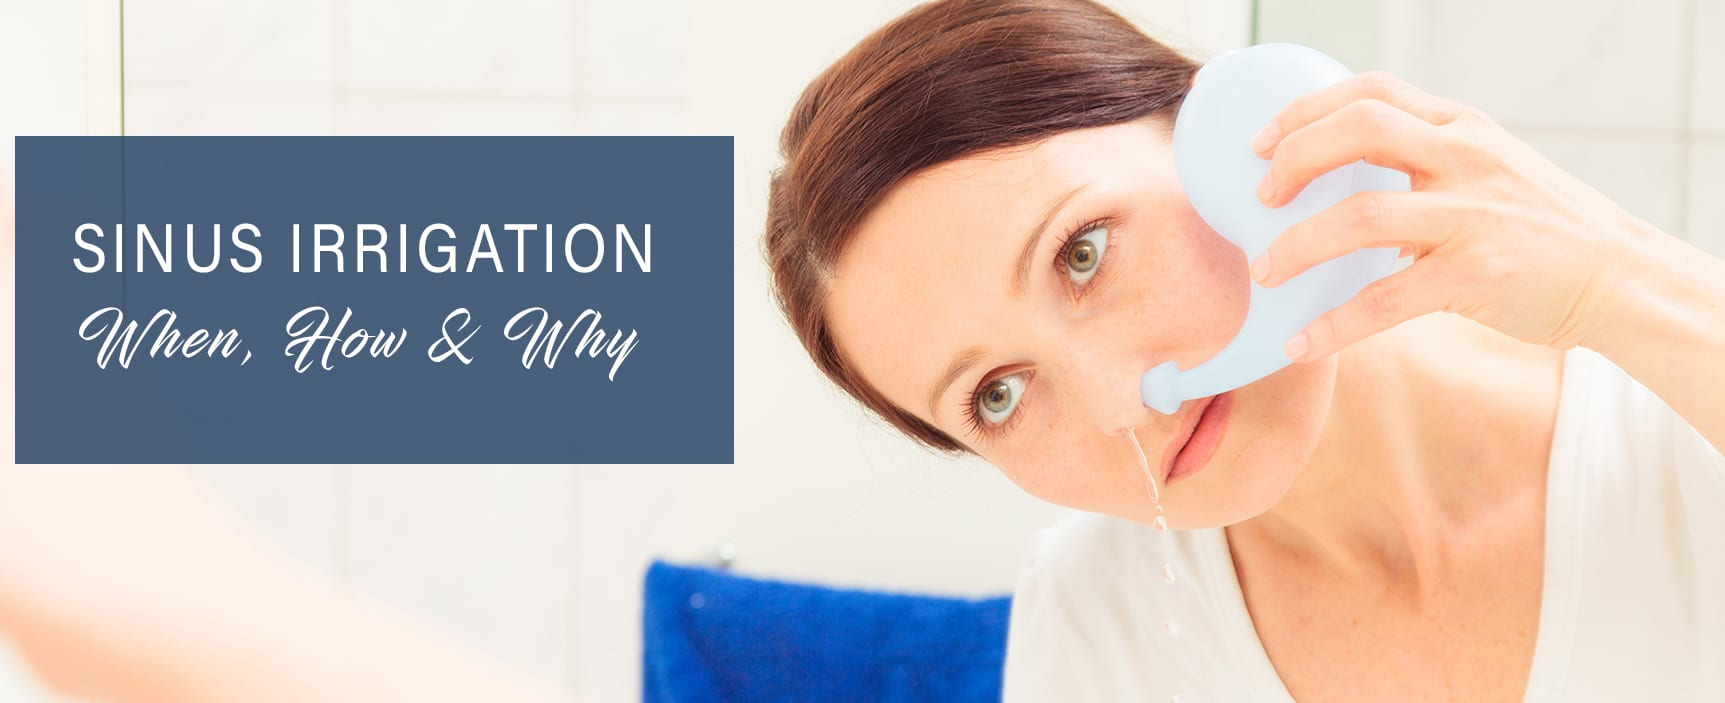 Sinus Irrigation – When, How & Why